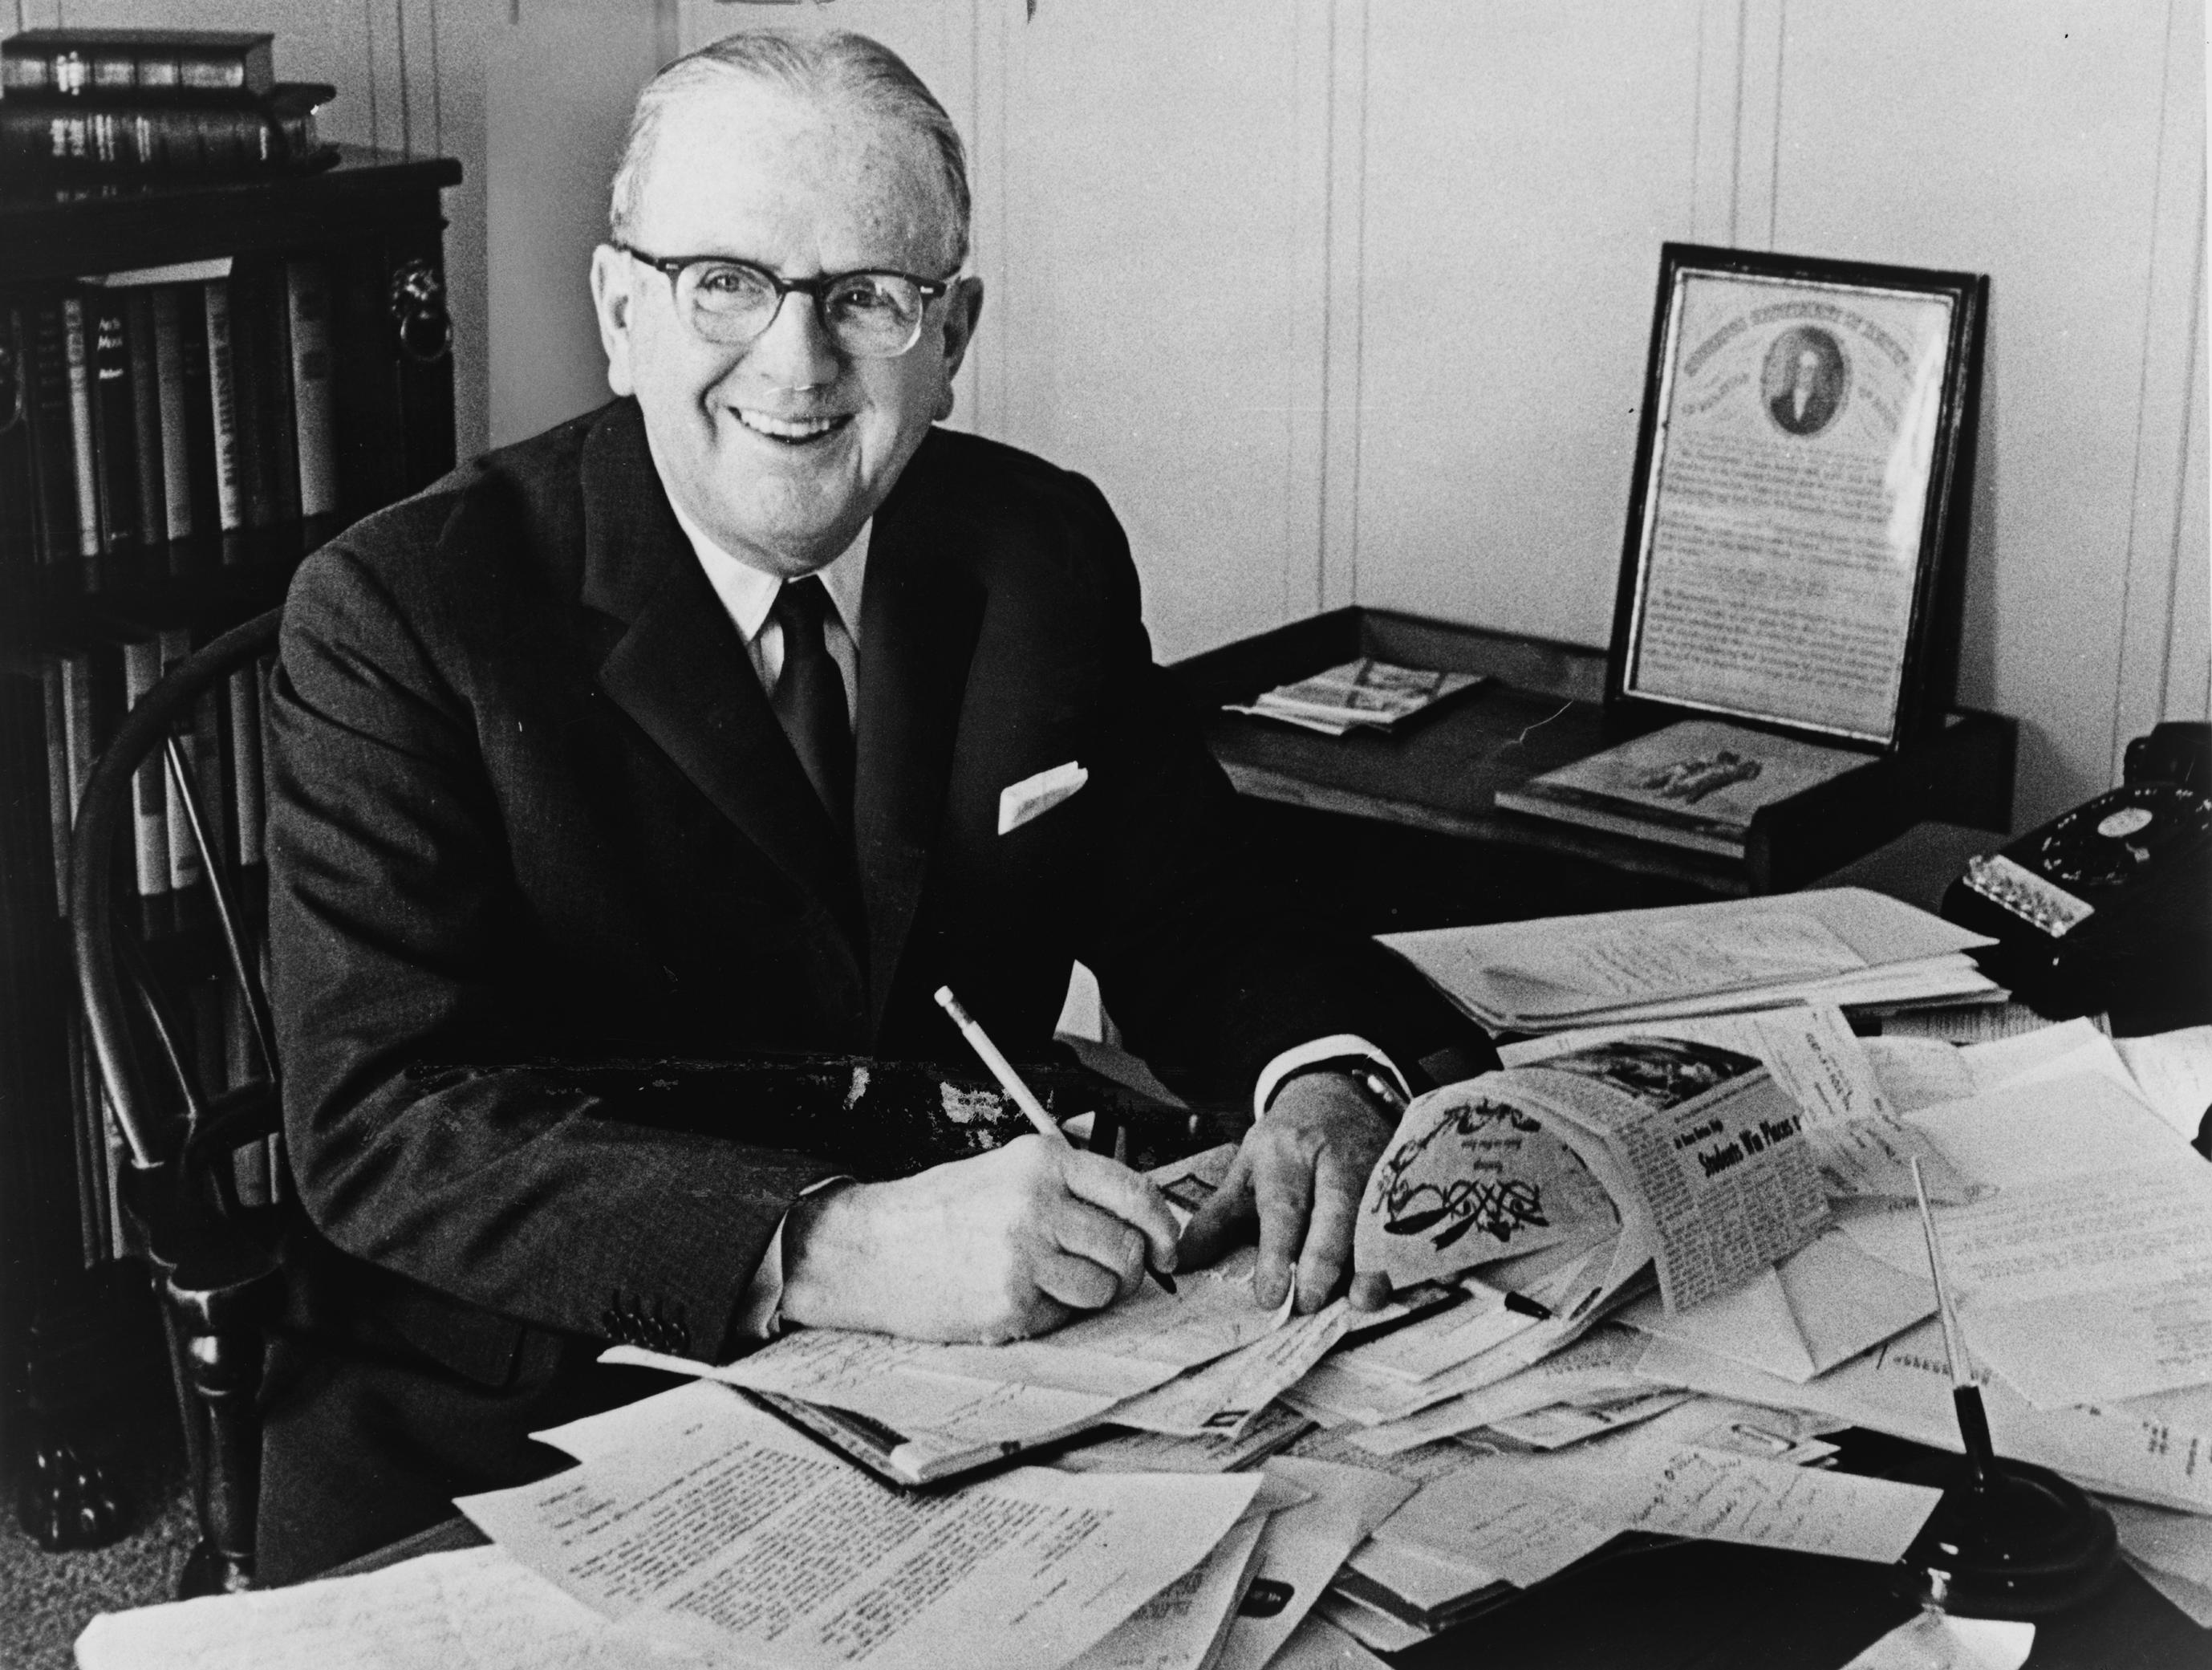 Norman Vincent Peale and the Power of Positive Thinking